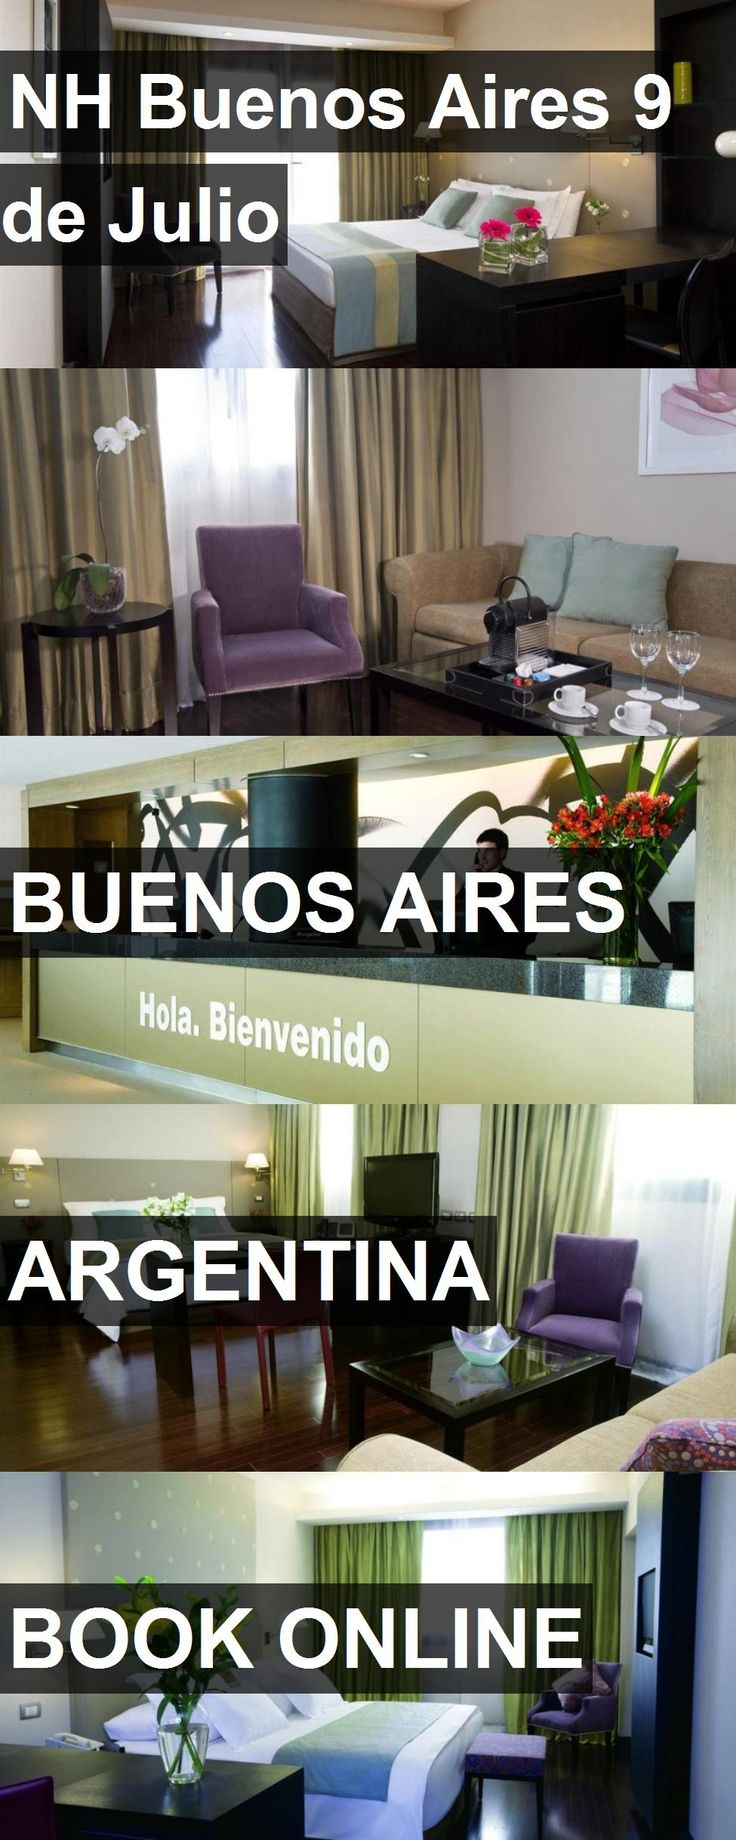 Hotel NH Buenos Aires 9 de Julio in Buenos Aires, Argentina. For more information, photos, reviews and best prices please follow the link. #Argentina #BuenosAires #travel #vacation #hotel